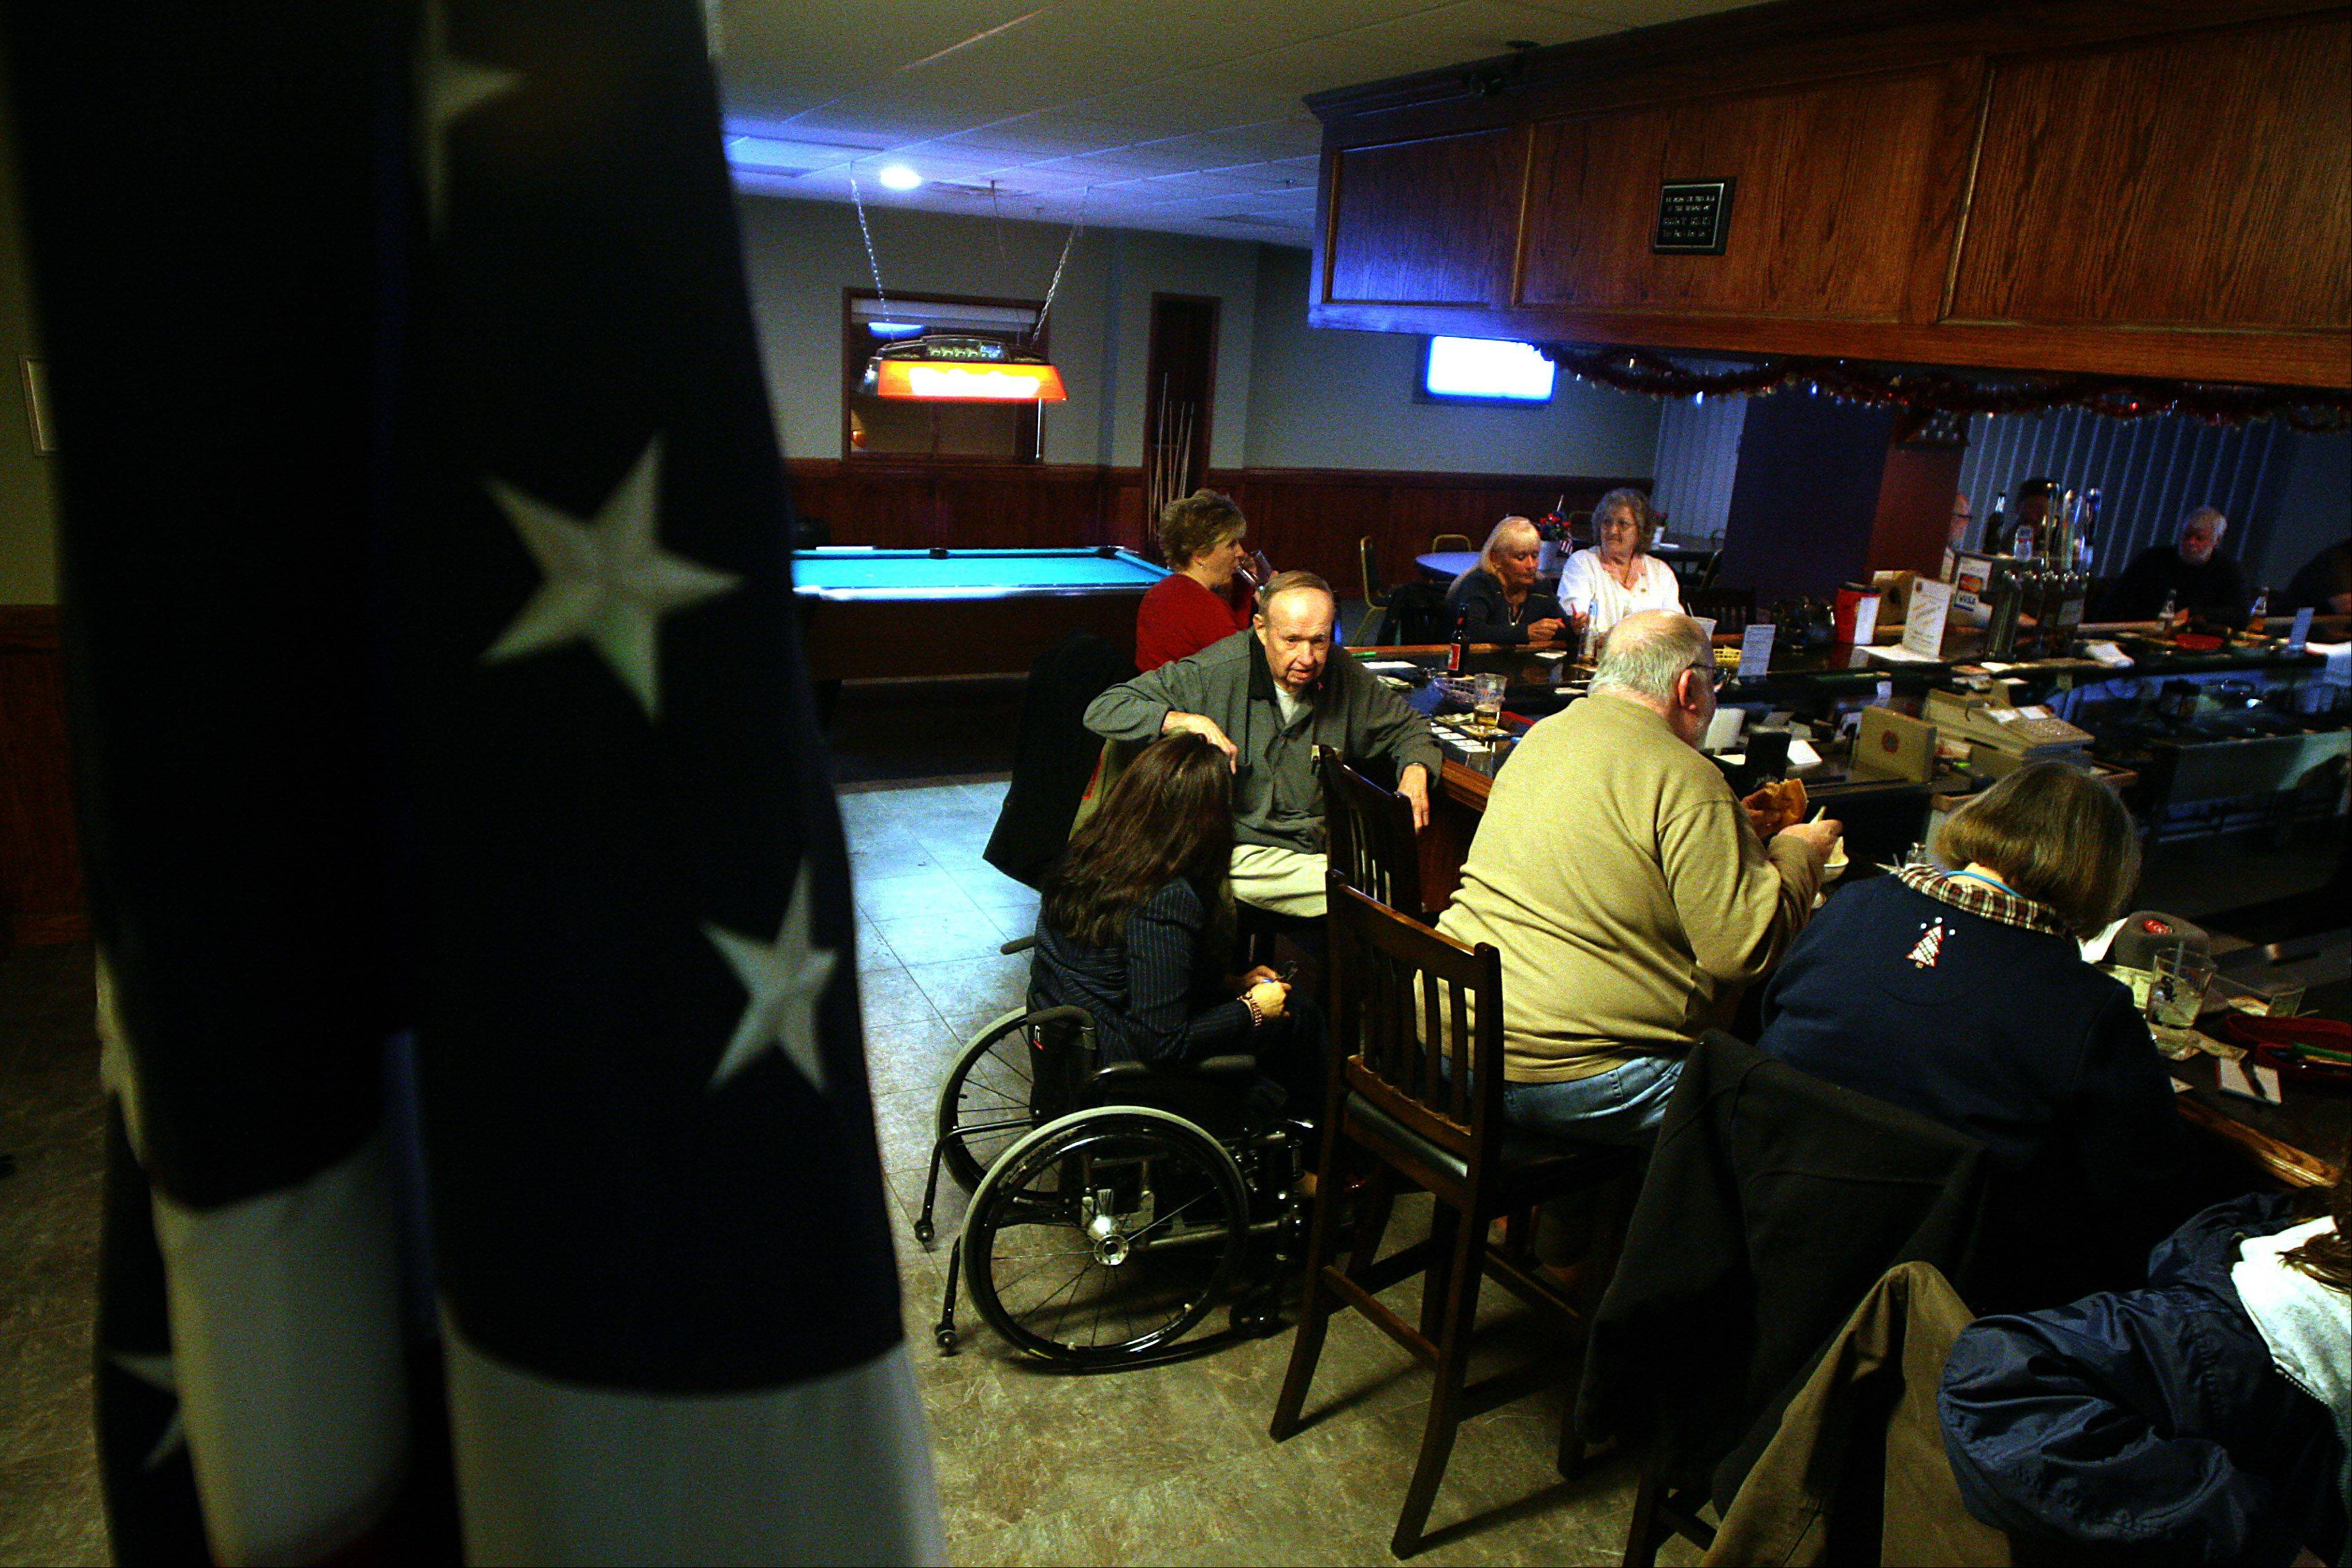 U.S. Rep. Tammy Duckworth visited Elgin VFW Post 1307 on Wednesday night to contribute to efforts to donate supplies for wounded soldiers overseas. Here, she talks with Elgin veteran Walt Telford.